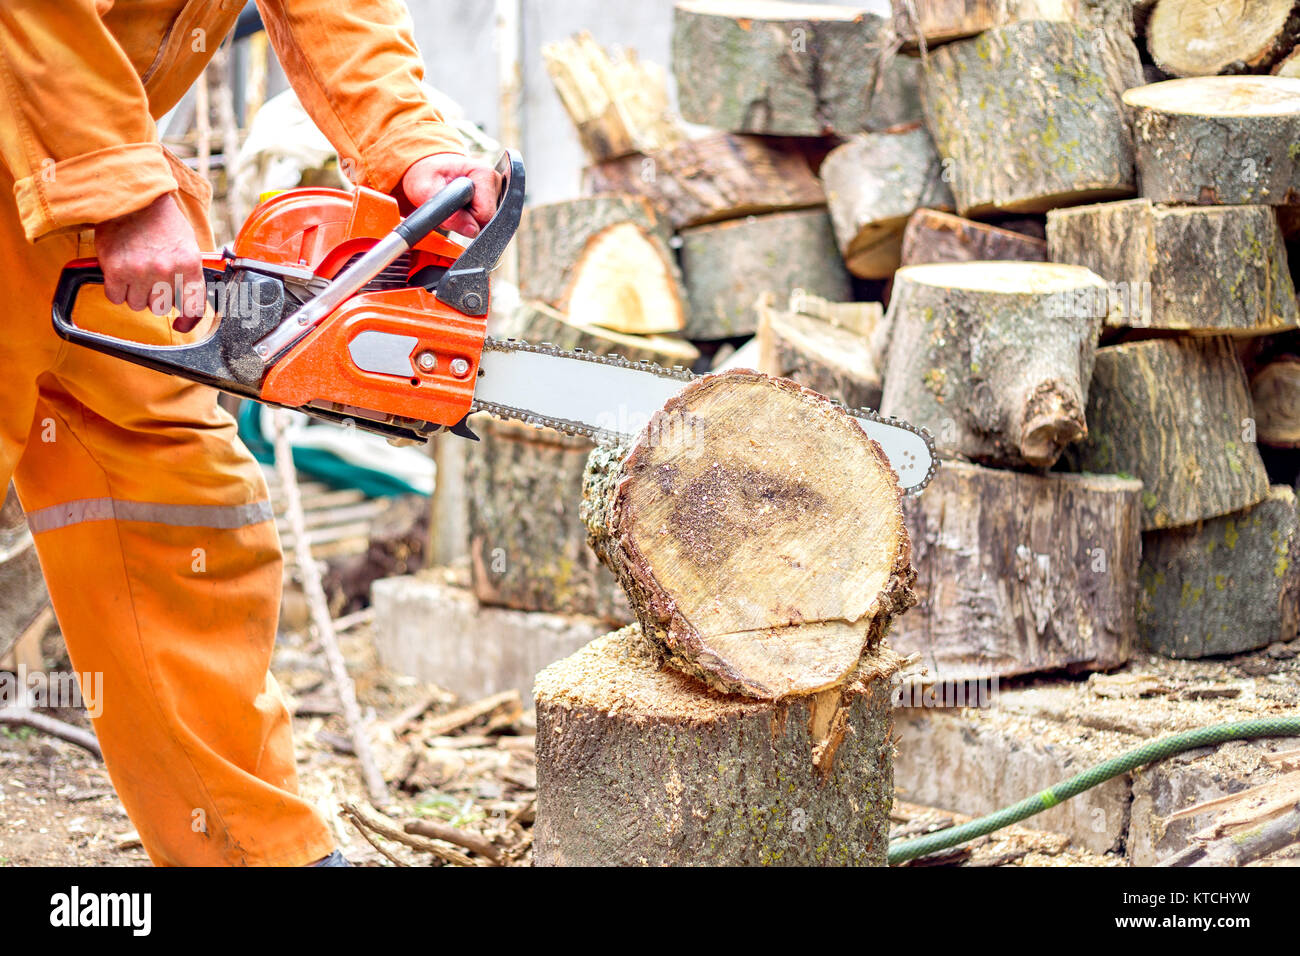 Lumberjack worker in full protective gear cutting firewood in forest with a professional chainsaw - Stock Image